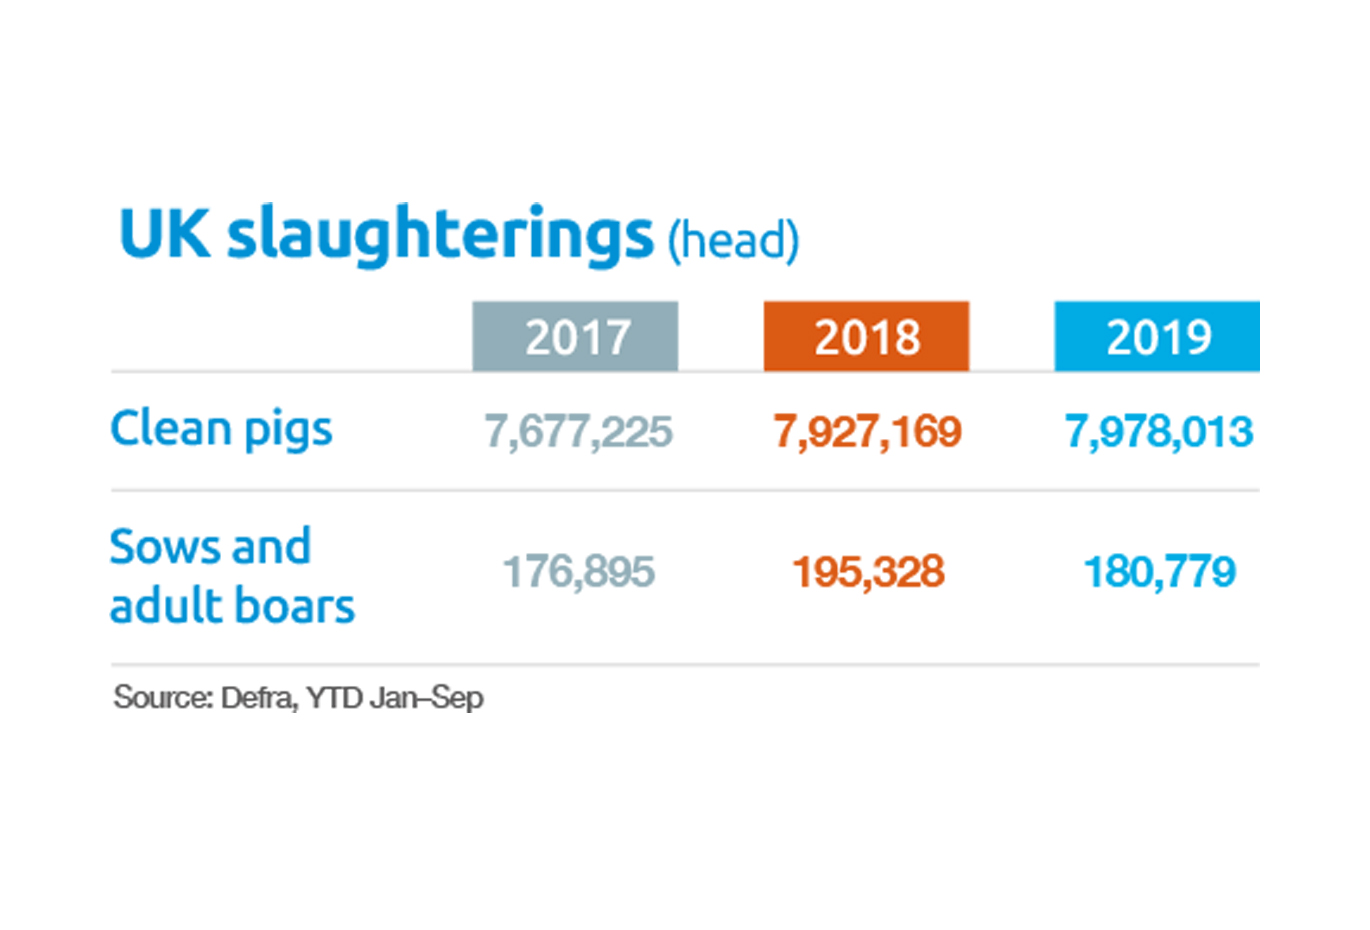 UK slaughterings